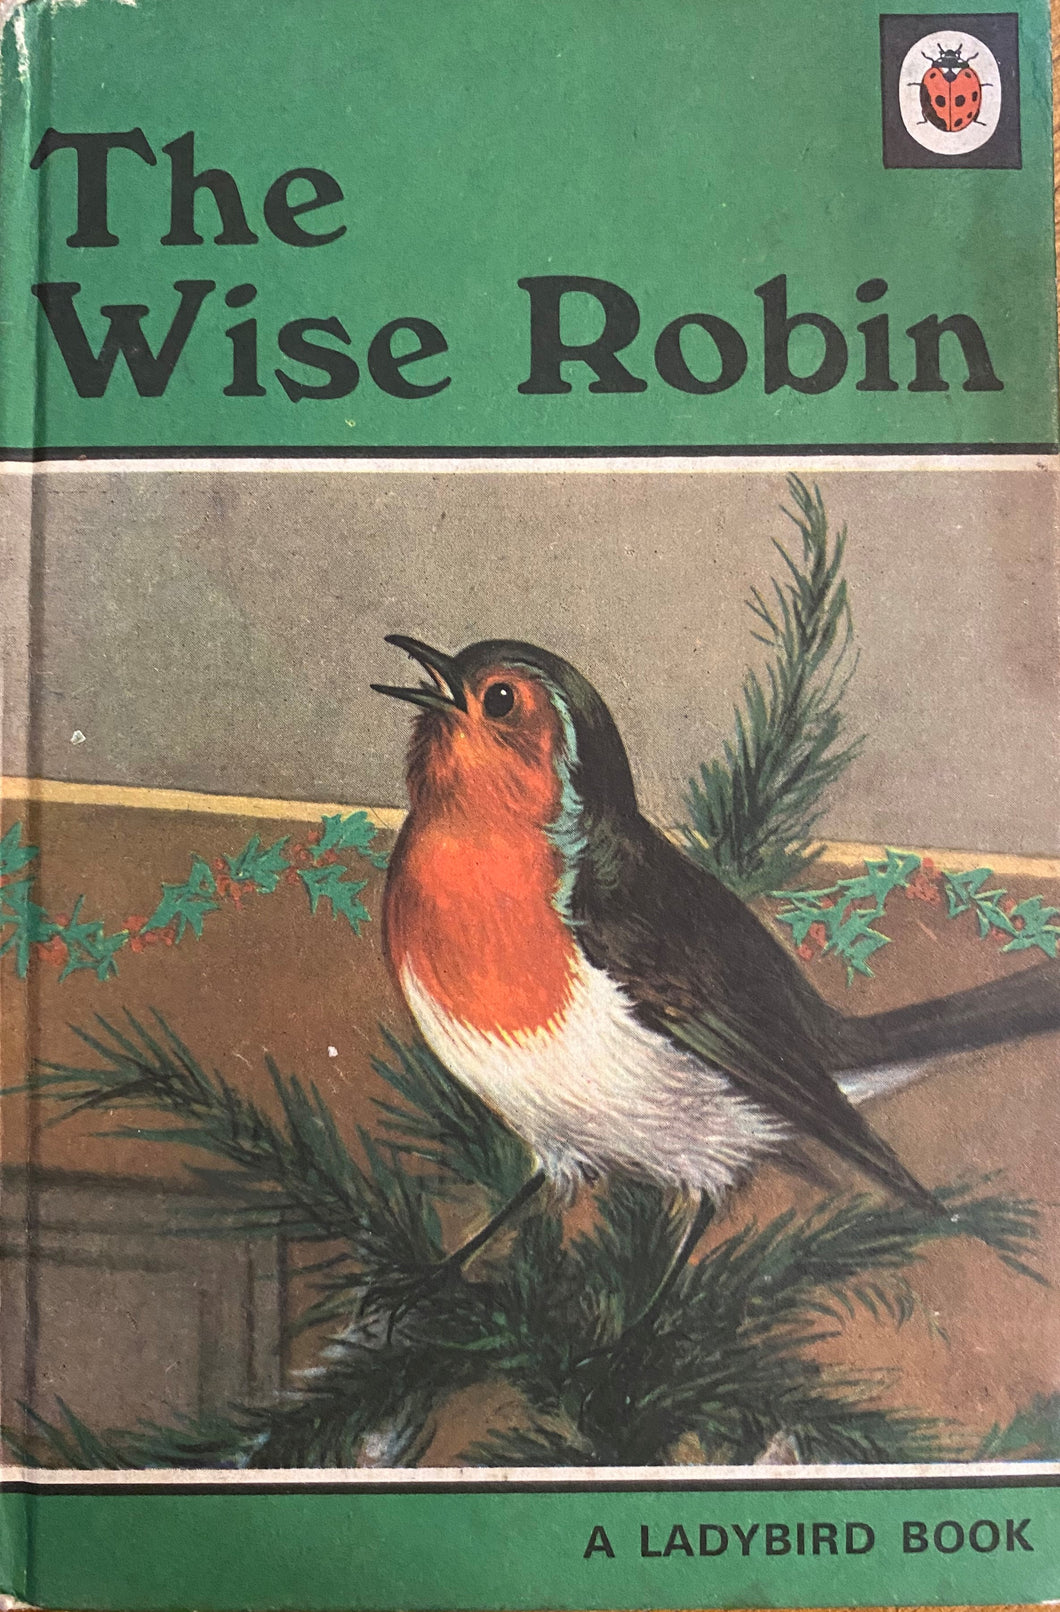 The Wise Robin (1 May 1974 - 15 June 1975)